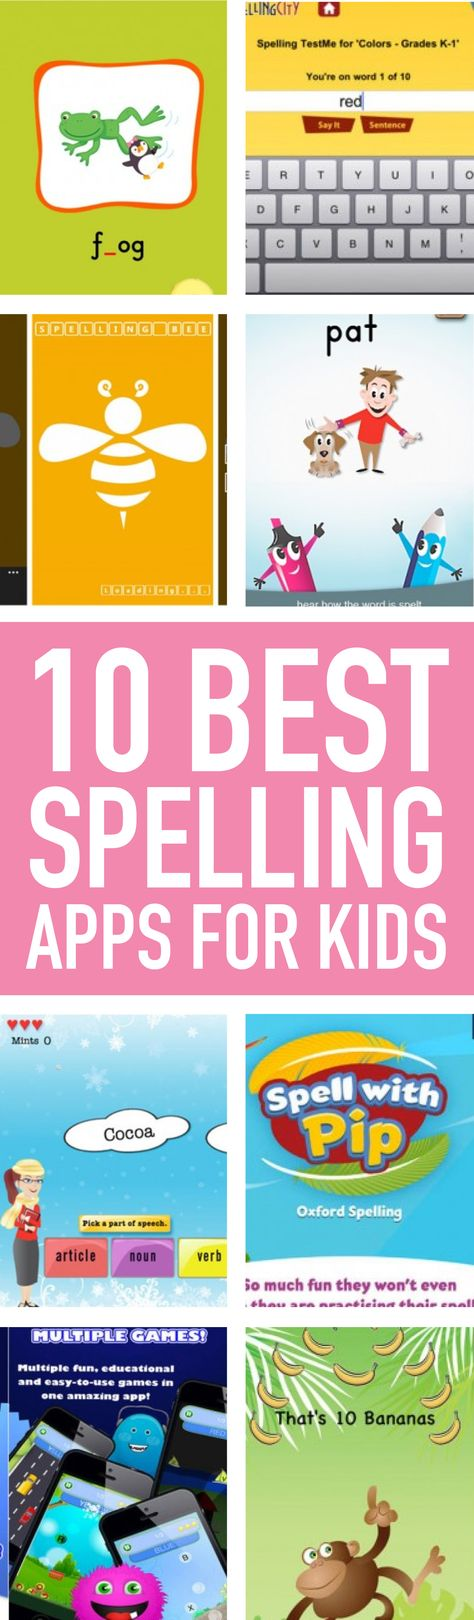 16 best spelling apps for kids - Today's Parent